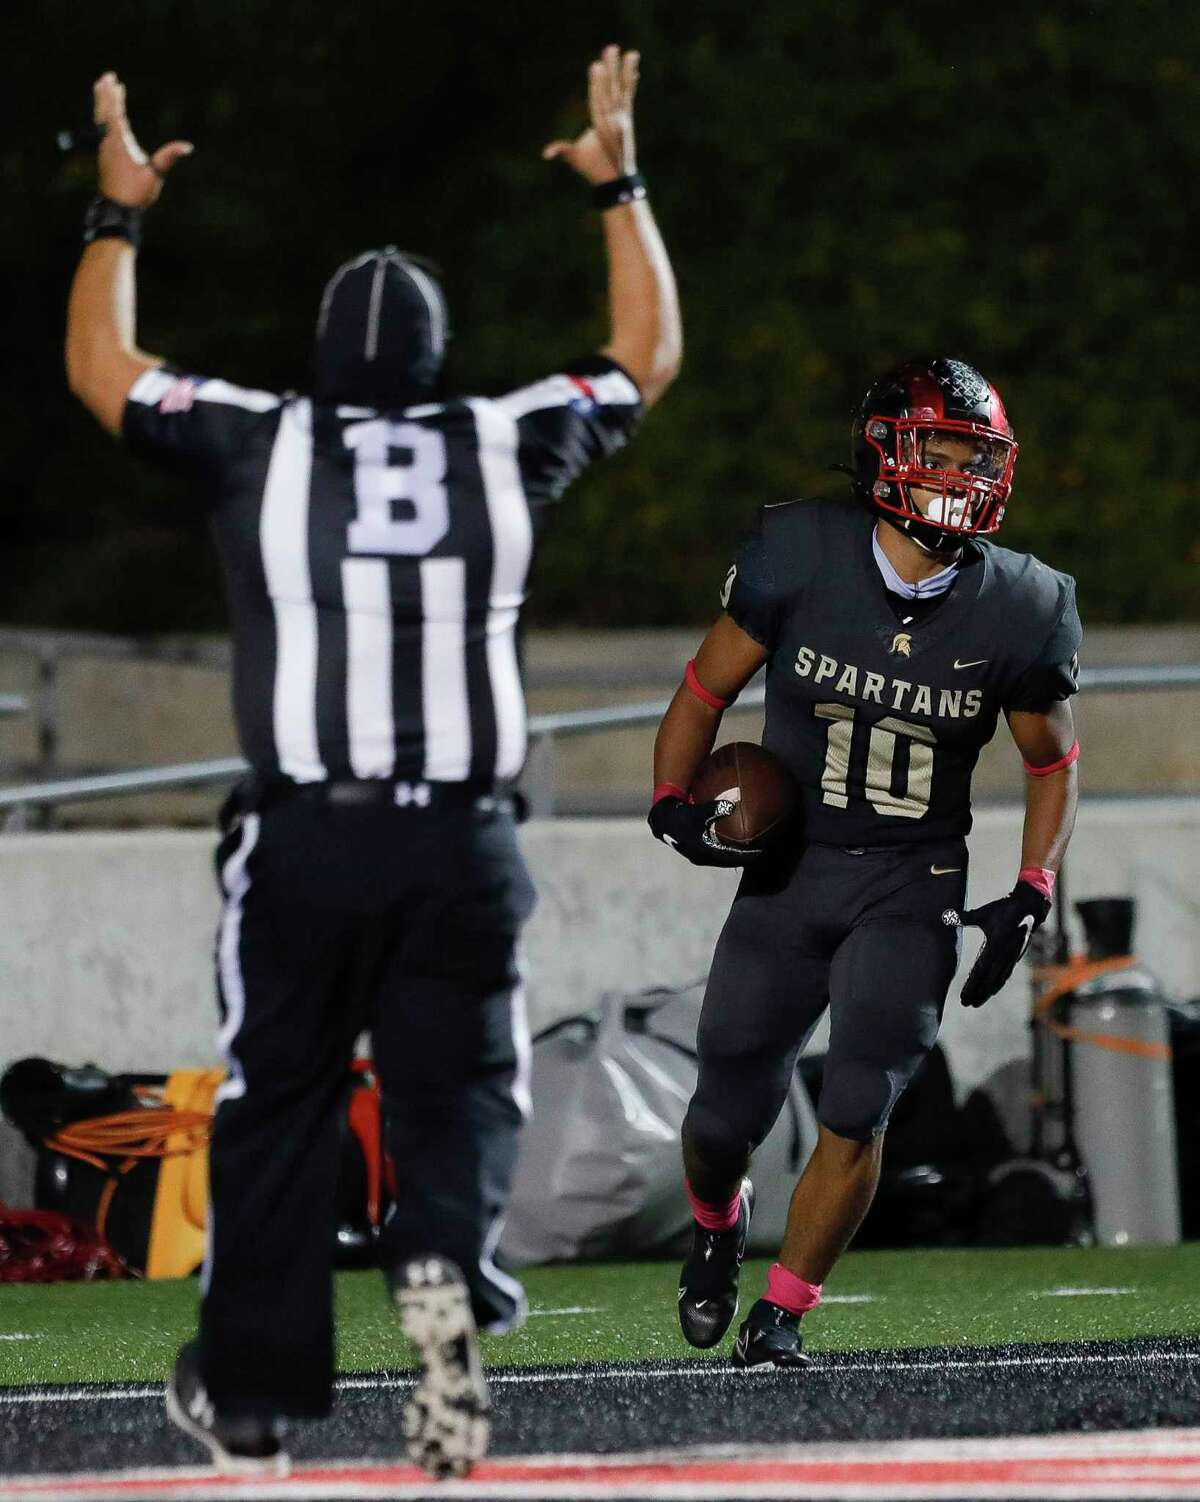 Porter running back Joshua Evans-Pickens (10) reacts after running for a 91-yard touchdown during the third quarter of a District 8-5A high school football game at Randall Reed Stadium, Thursday, Nov. 5, 2020, in New Caney.